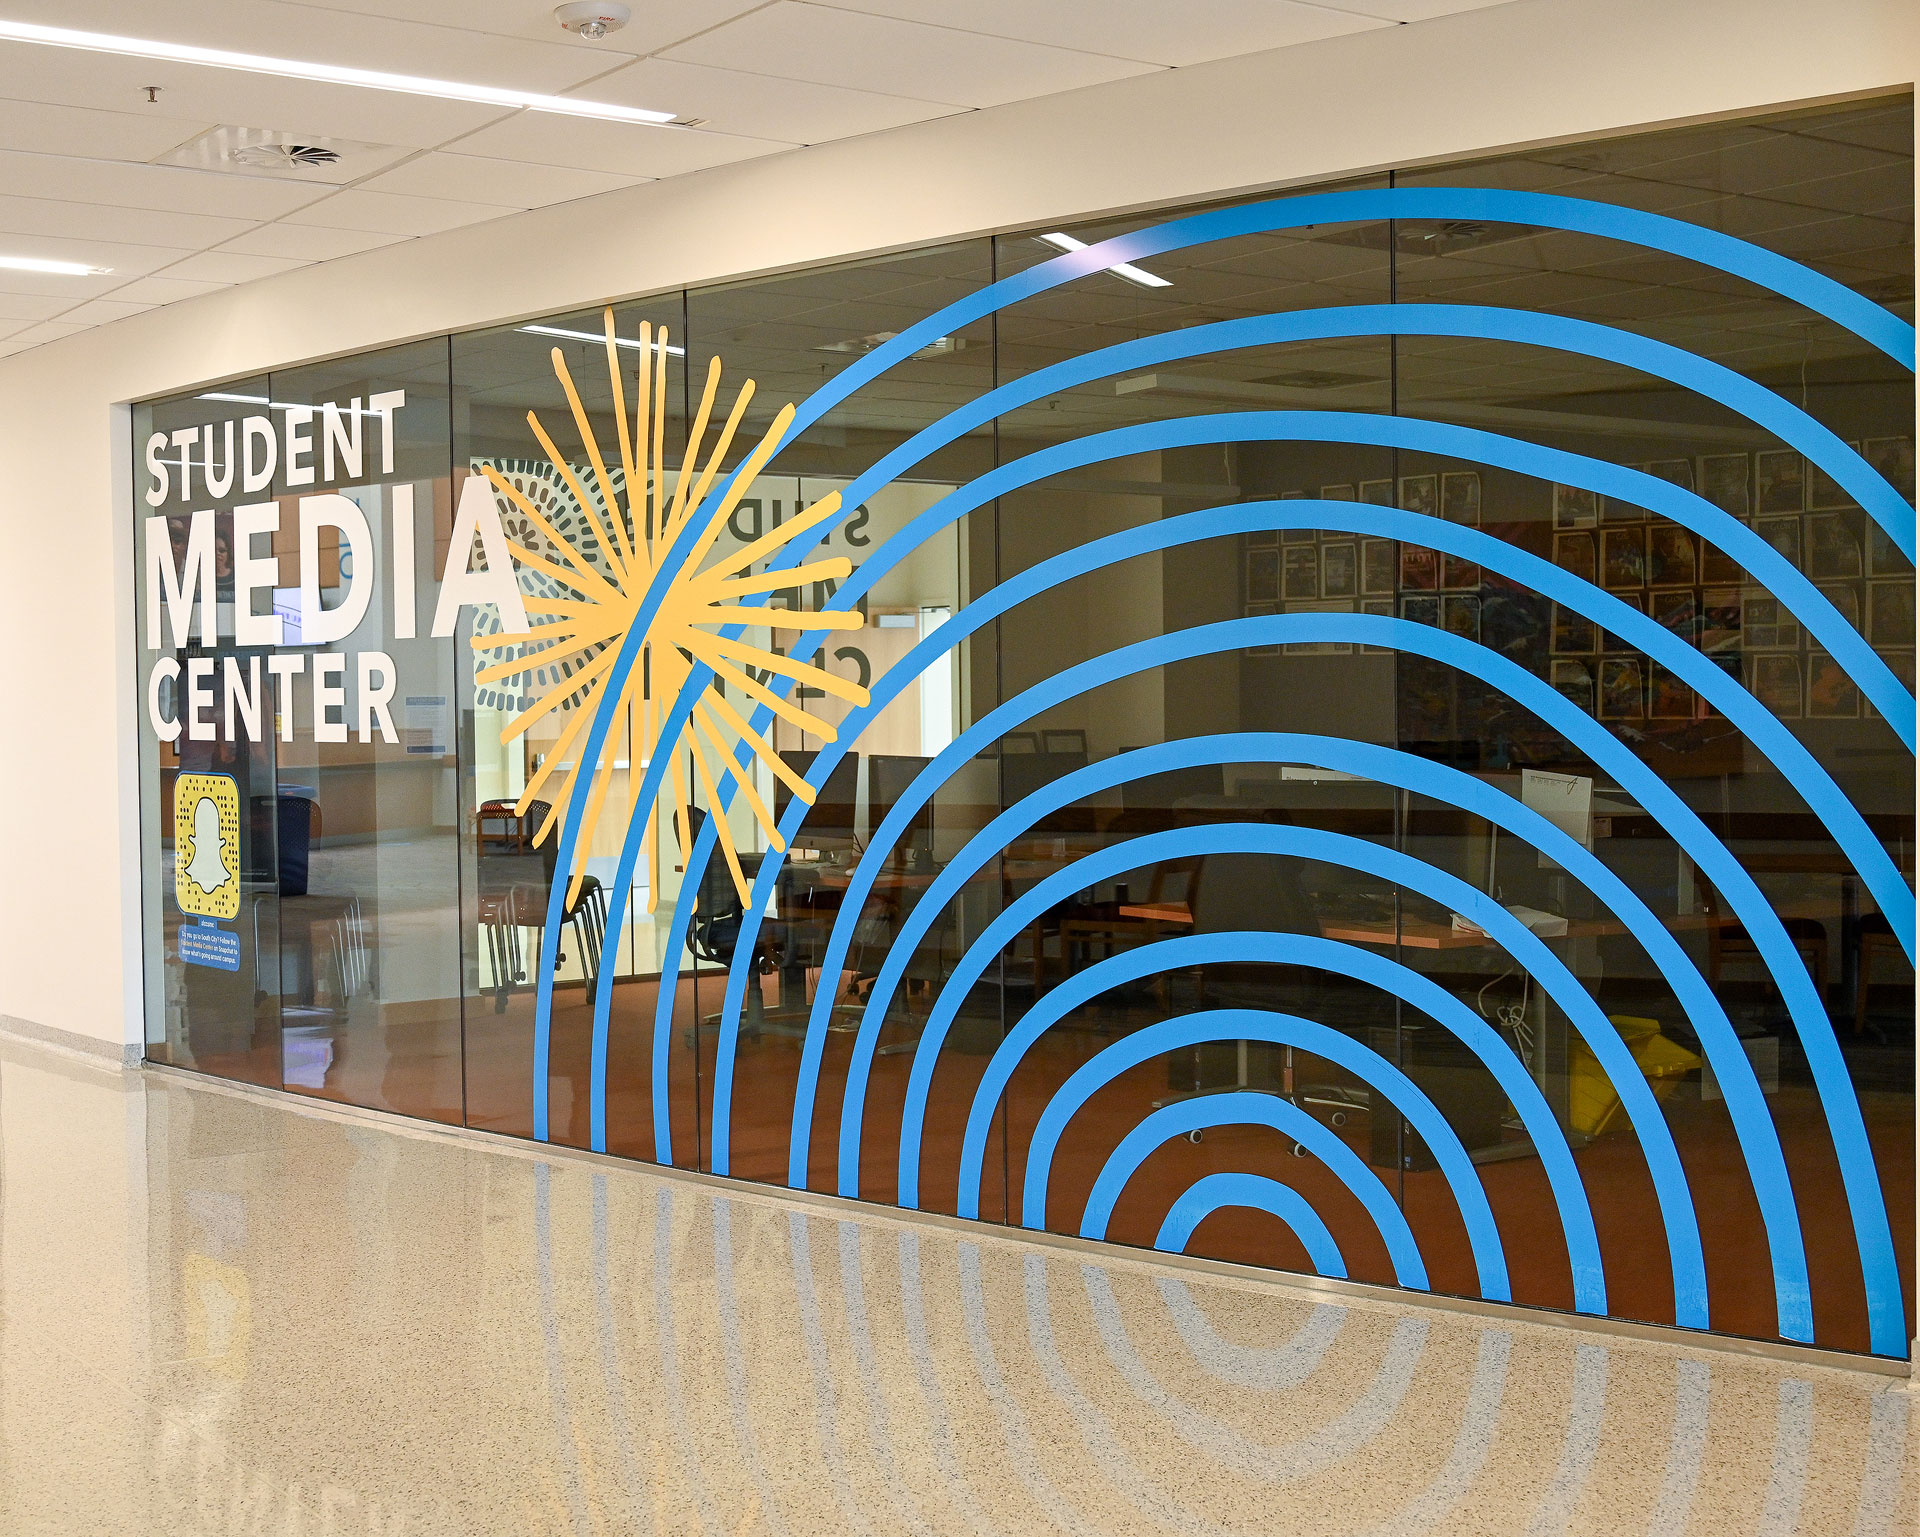 Student Media Center window graphics at South City Campus